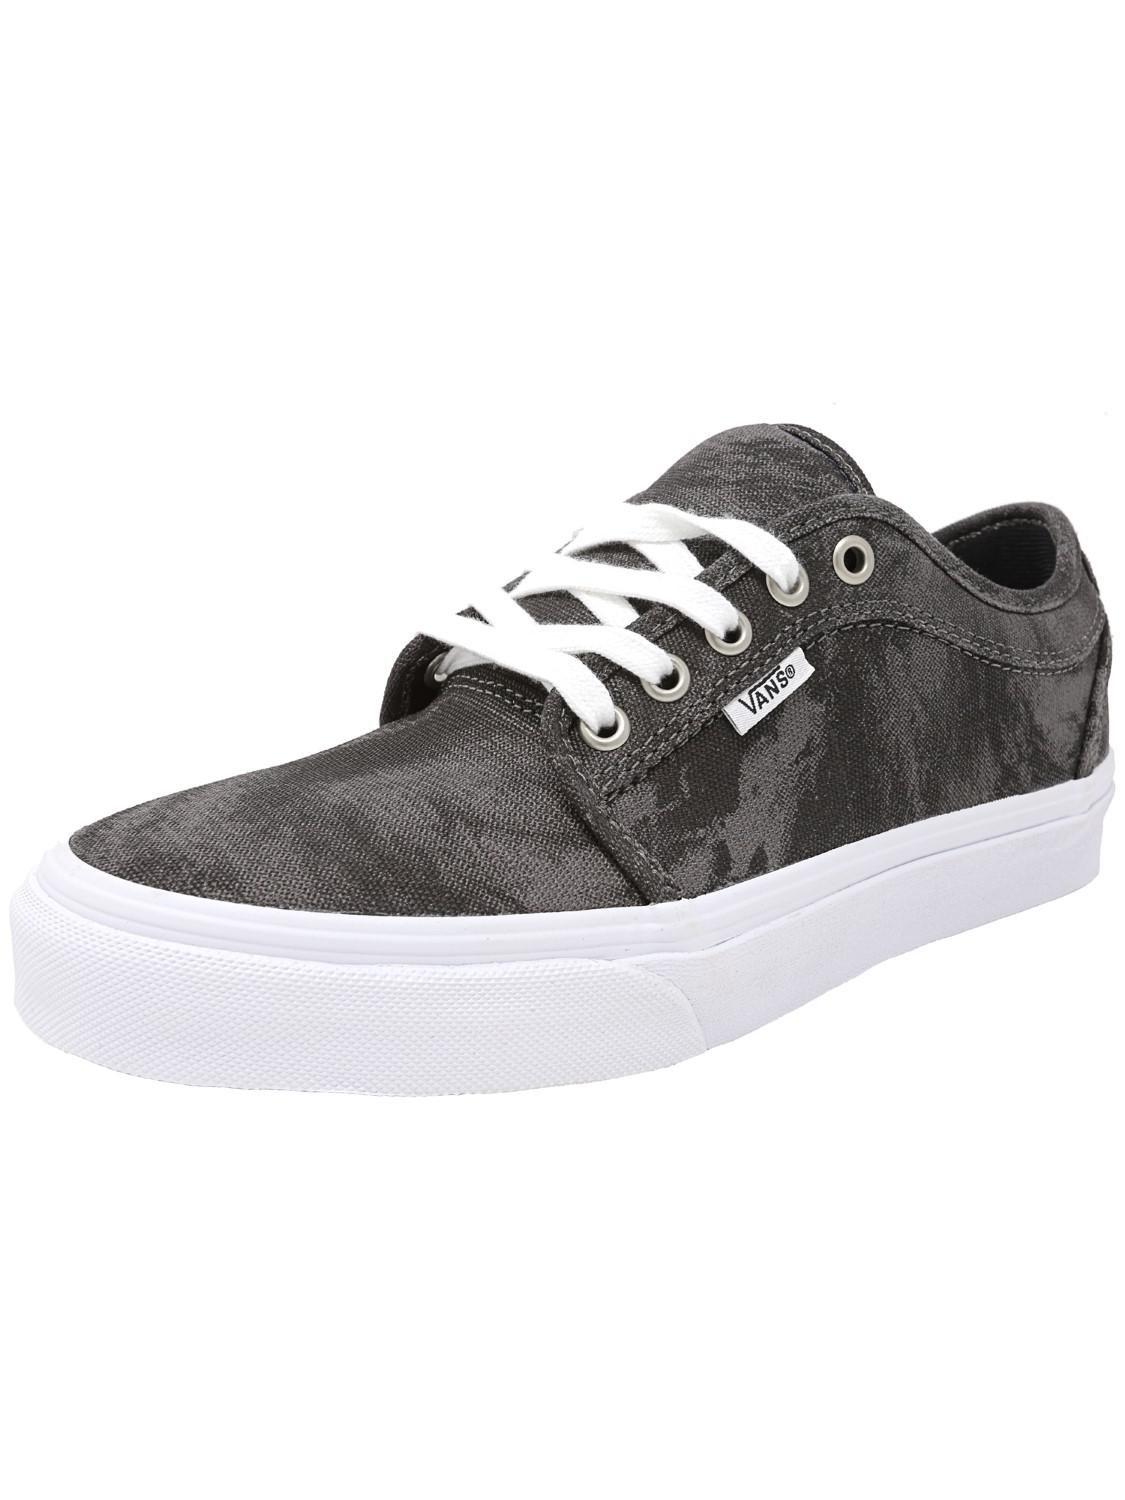 d86dd11ffb Lyst - Vans Chukka Low Cyclone Ankle-high Canvas Skateboarding Shoe ...